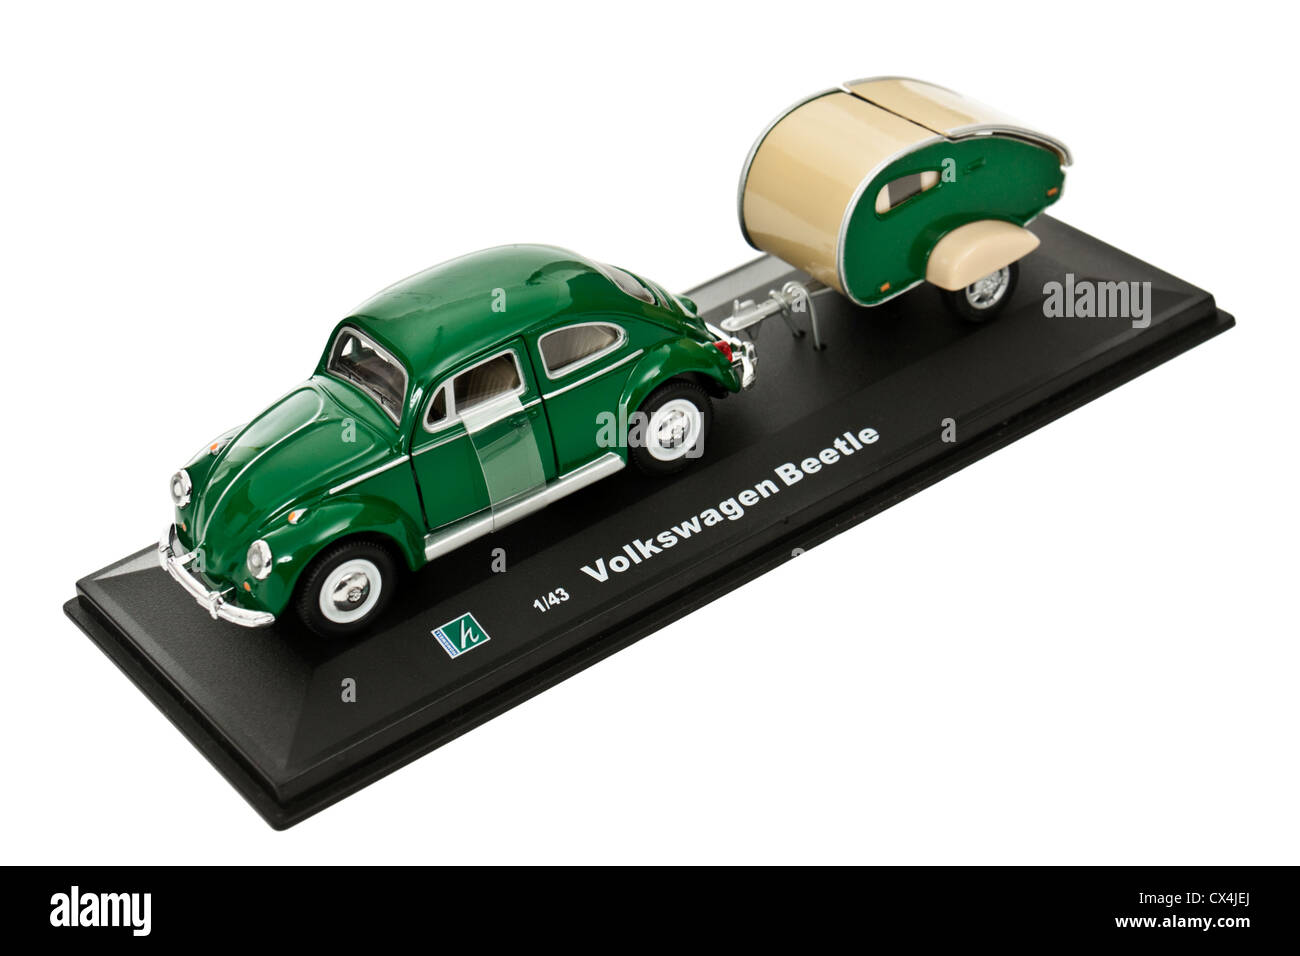 Cararama (Hongwell Toys) 1:43 scale diecast Volkswagen Beetle towing caravan Stock Photo